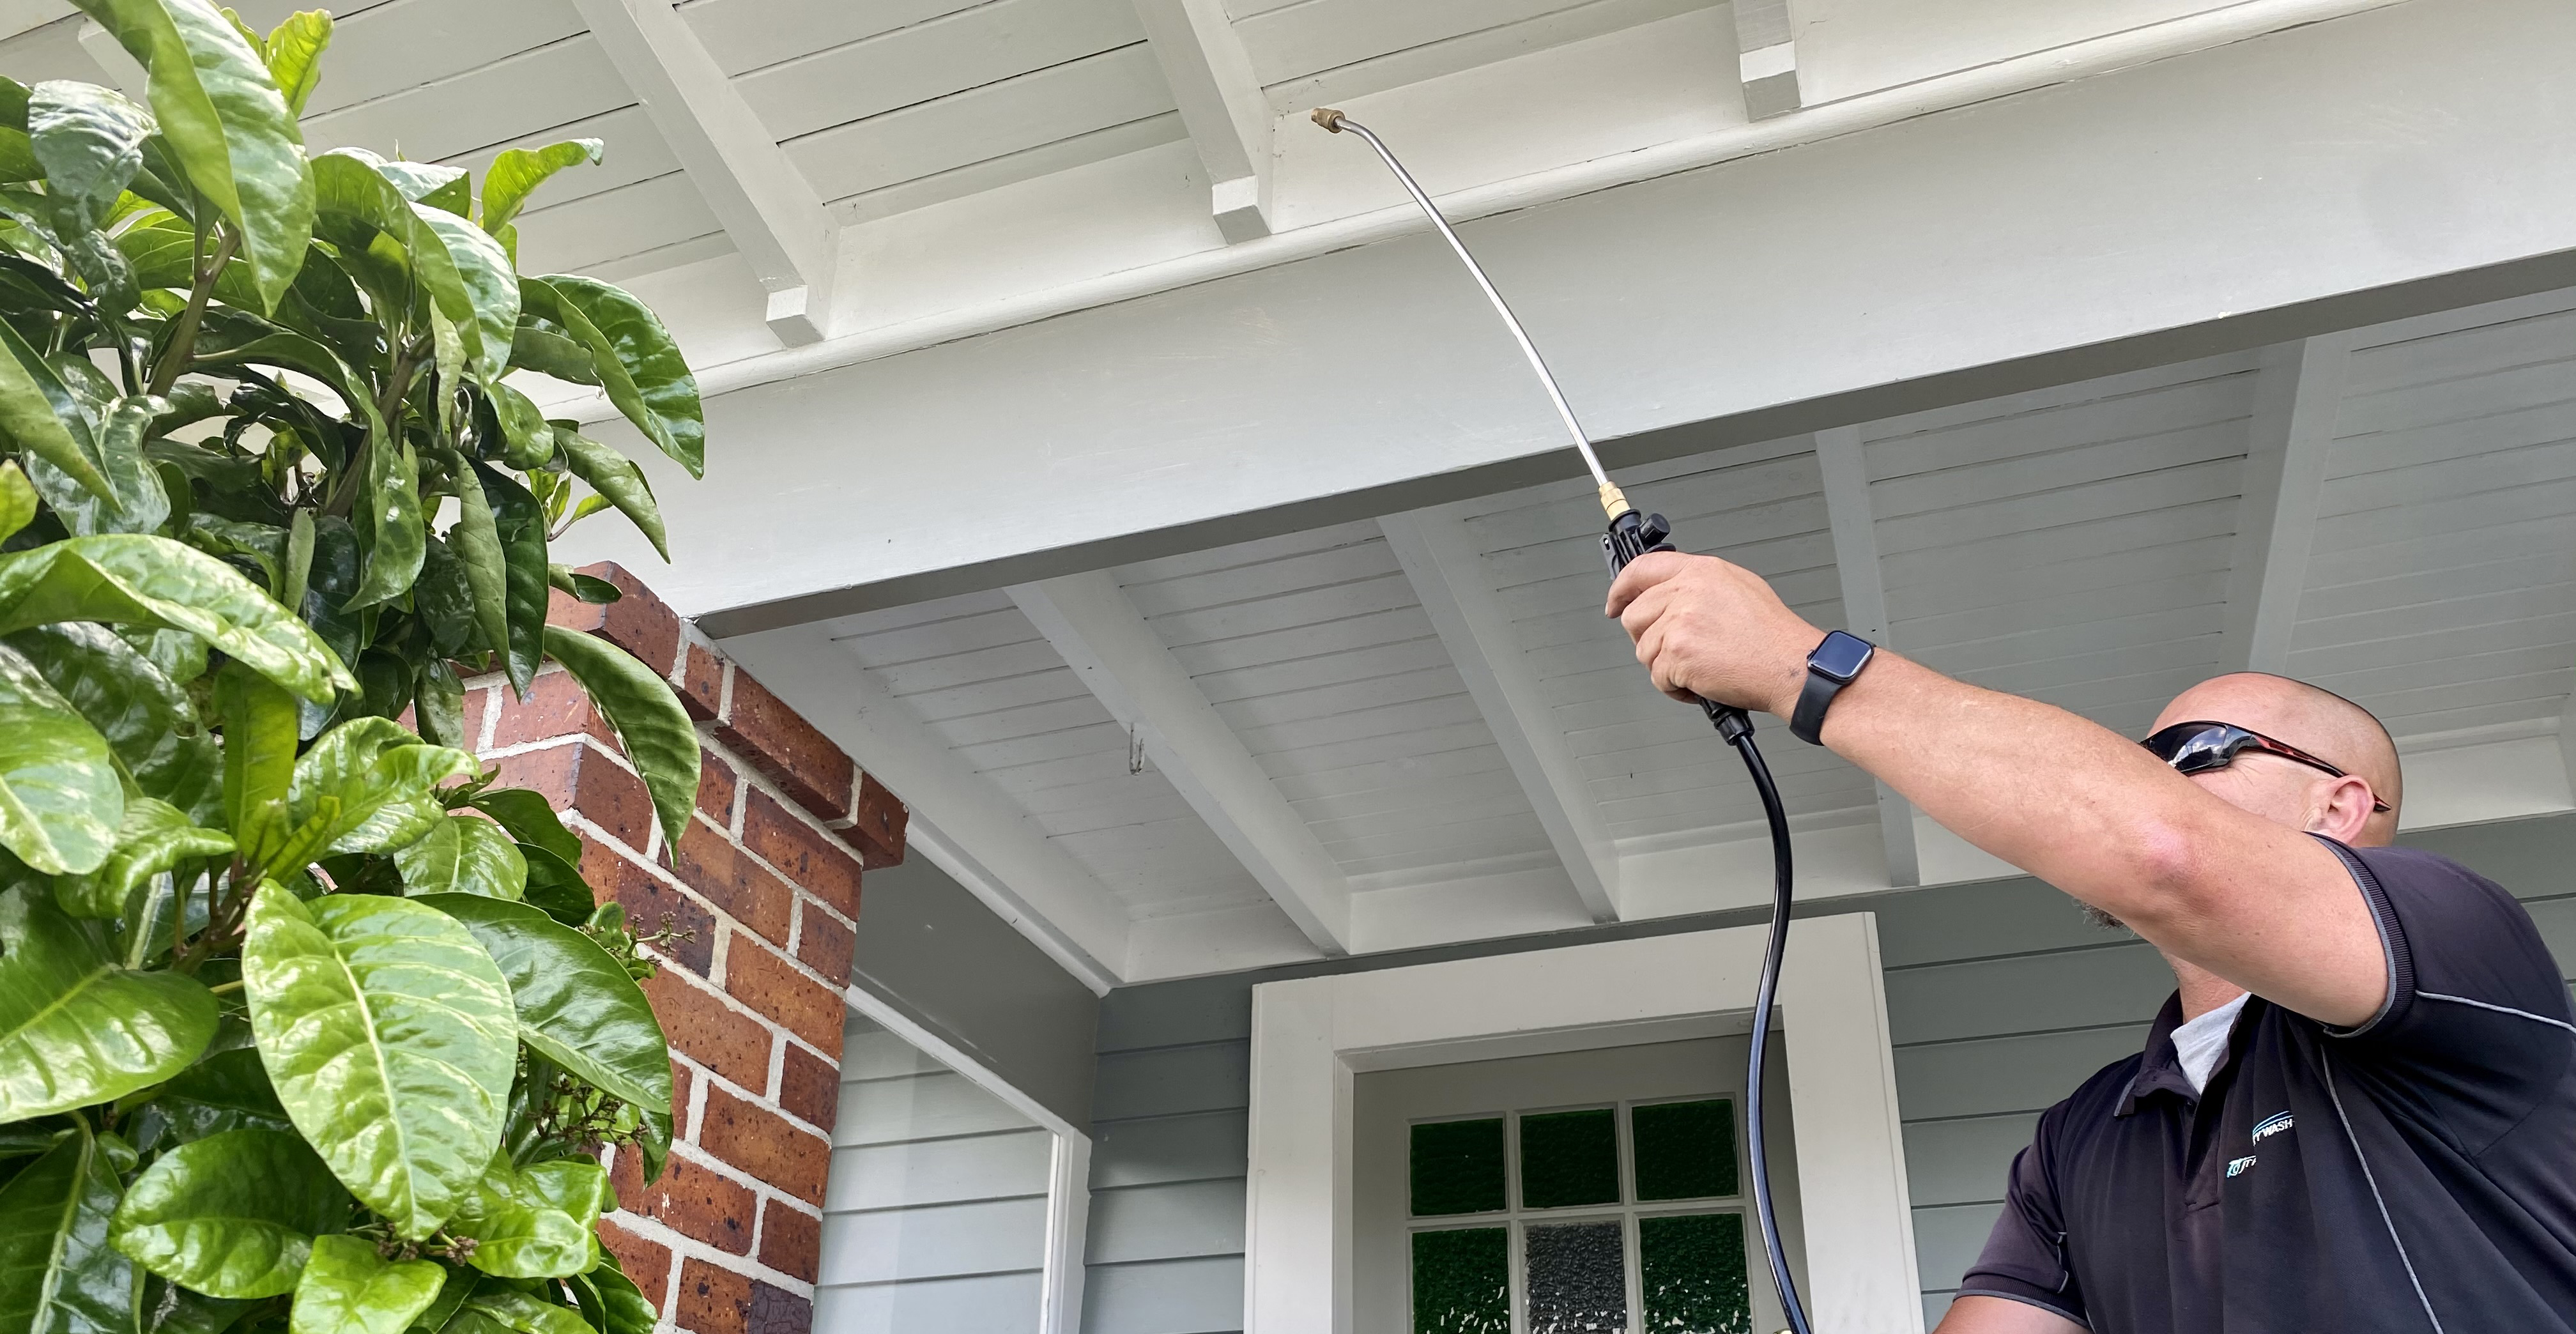 Pest Spraying & Bug Control to remove spiderwebs on house